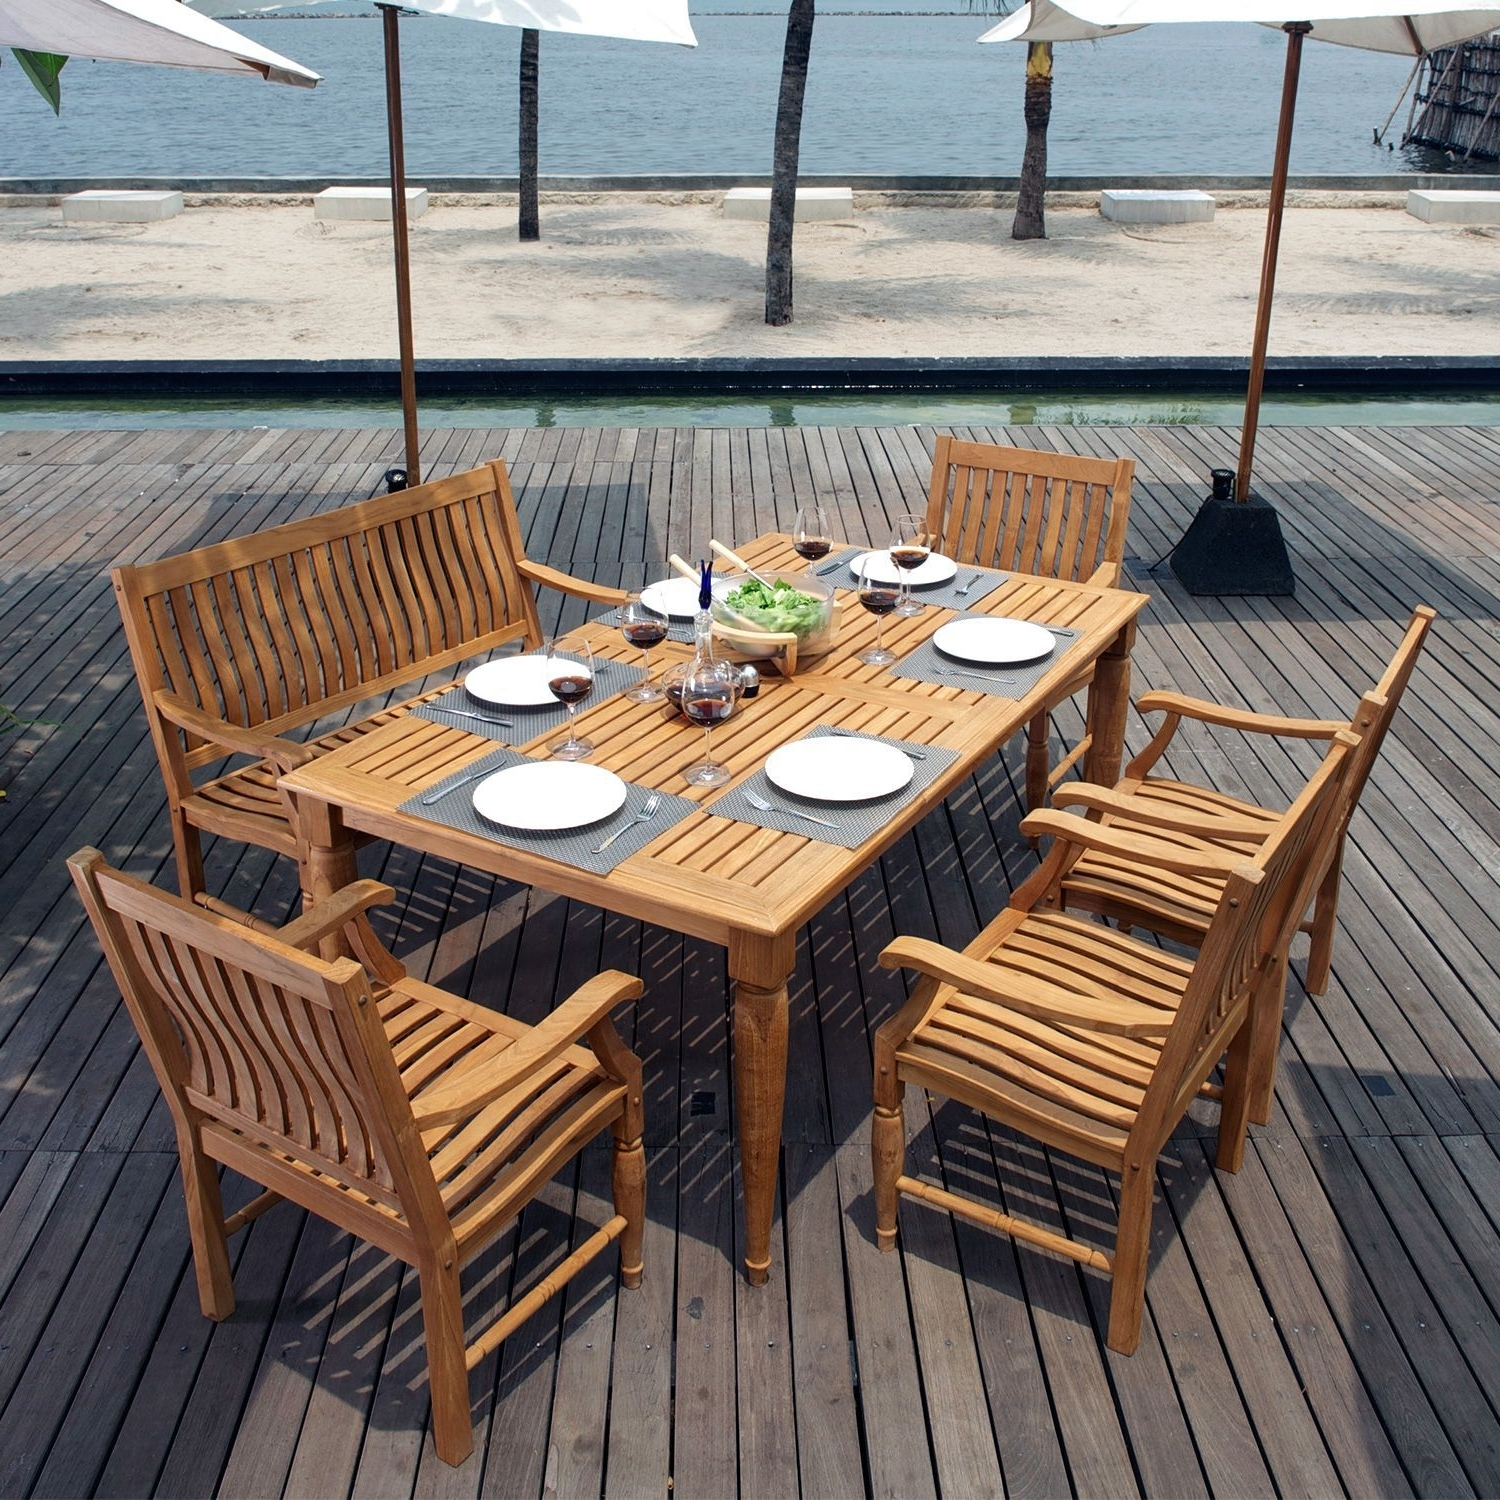 Patio Conversation Sets At Sam's Club With Recent Deluxe Teak 6 Pc (View 14 of 20)